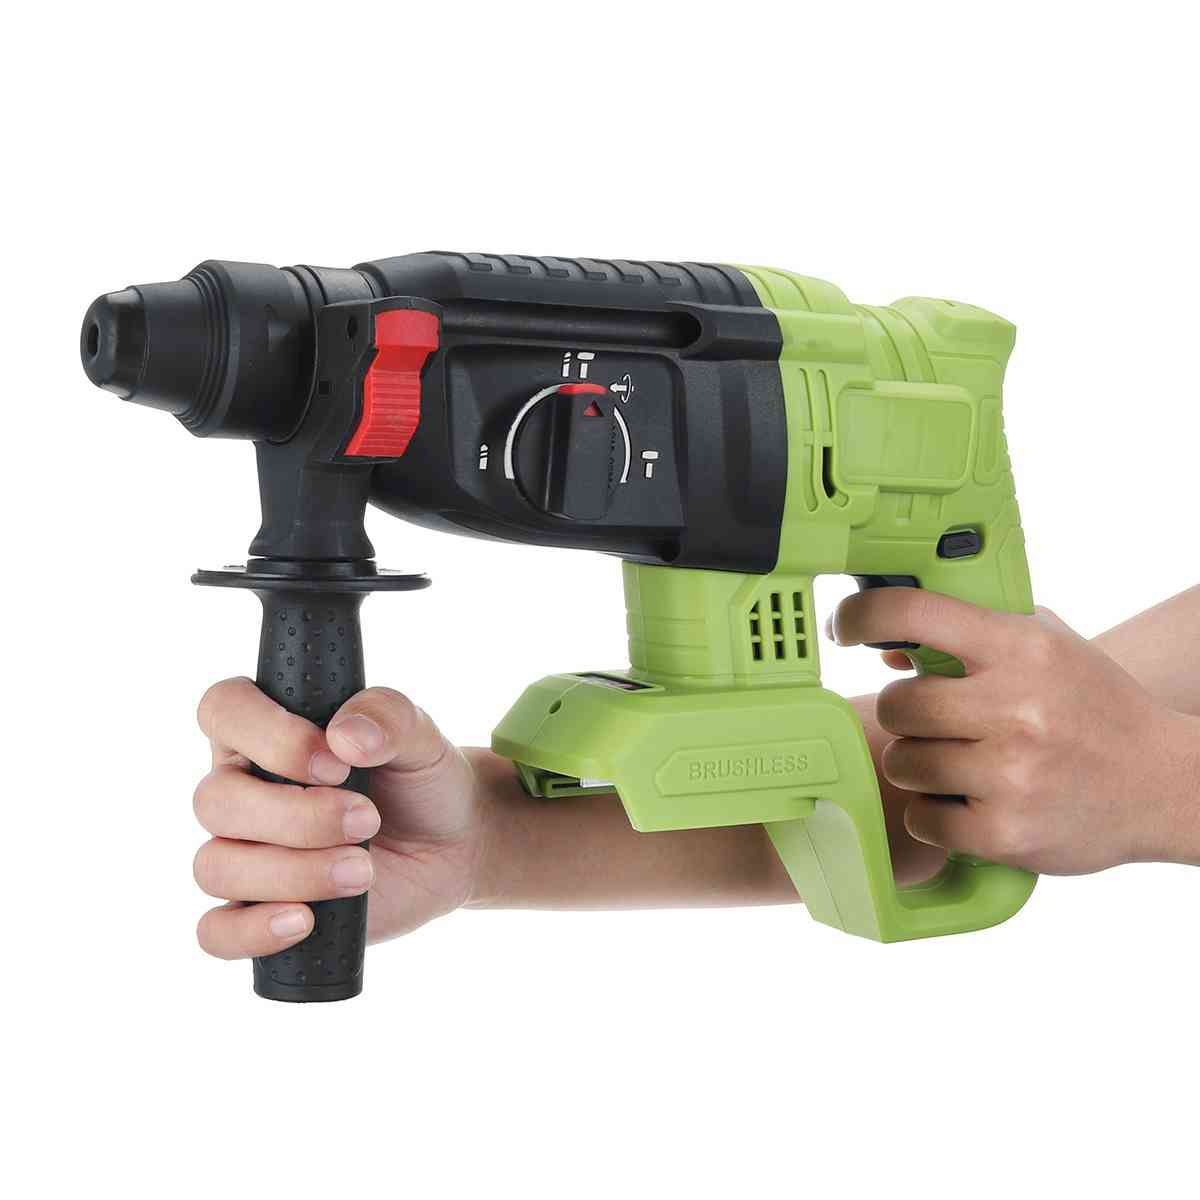 Electric Cordless, Brushless Hammer, Concrete Breaker Punch, Power Drill Tool